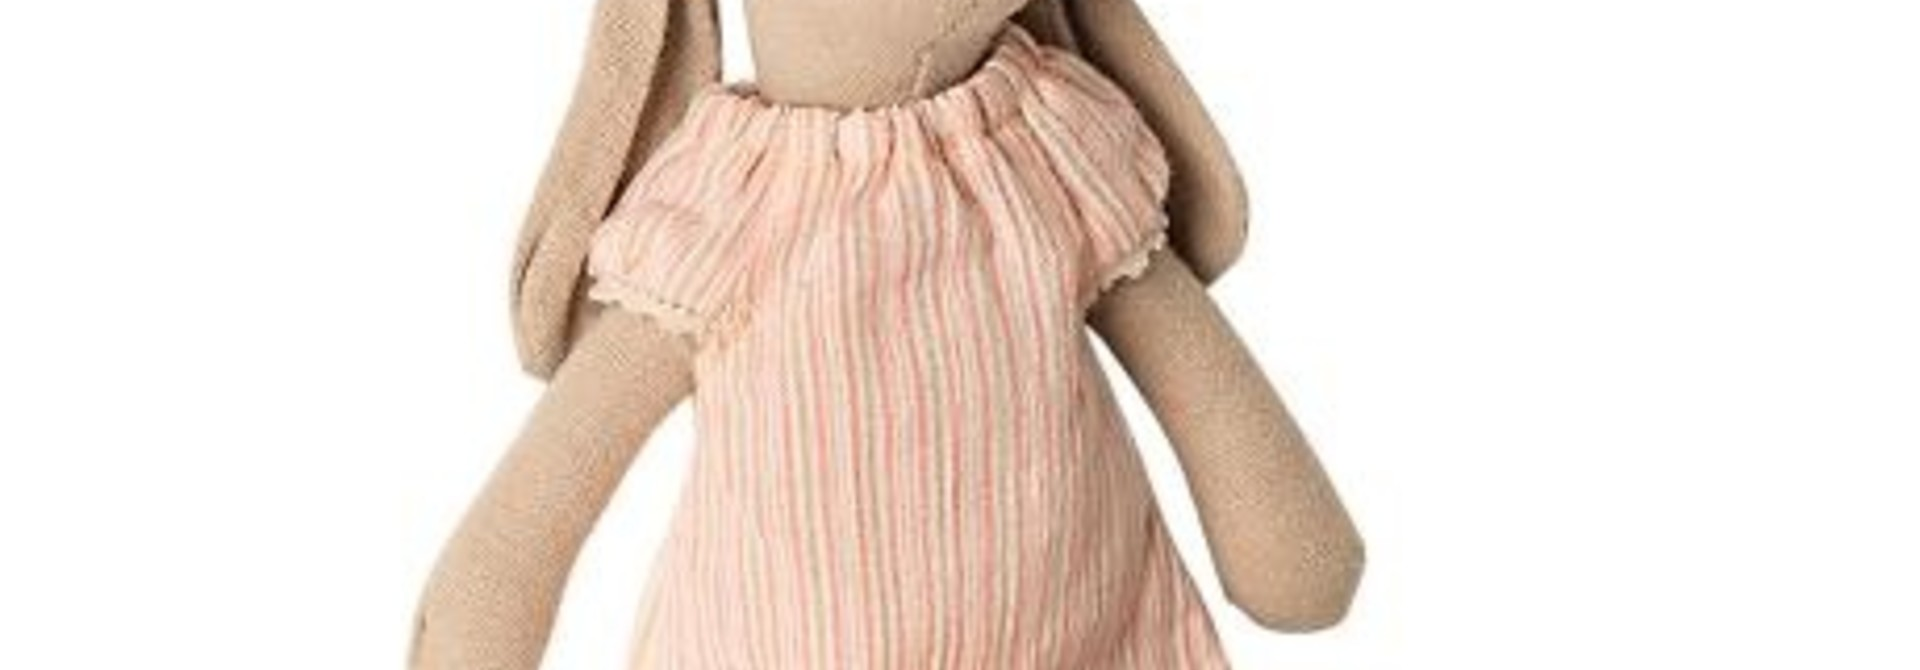 Bunny - Nightgown - Size 1